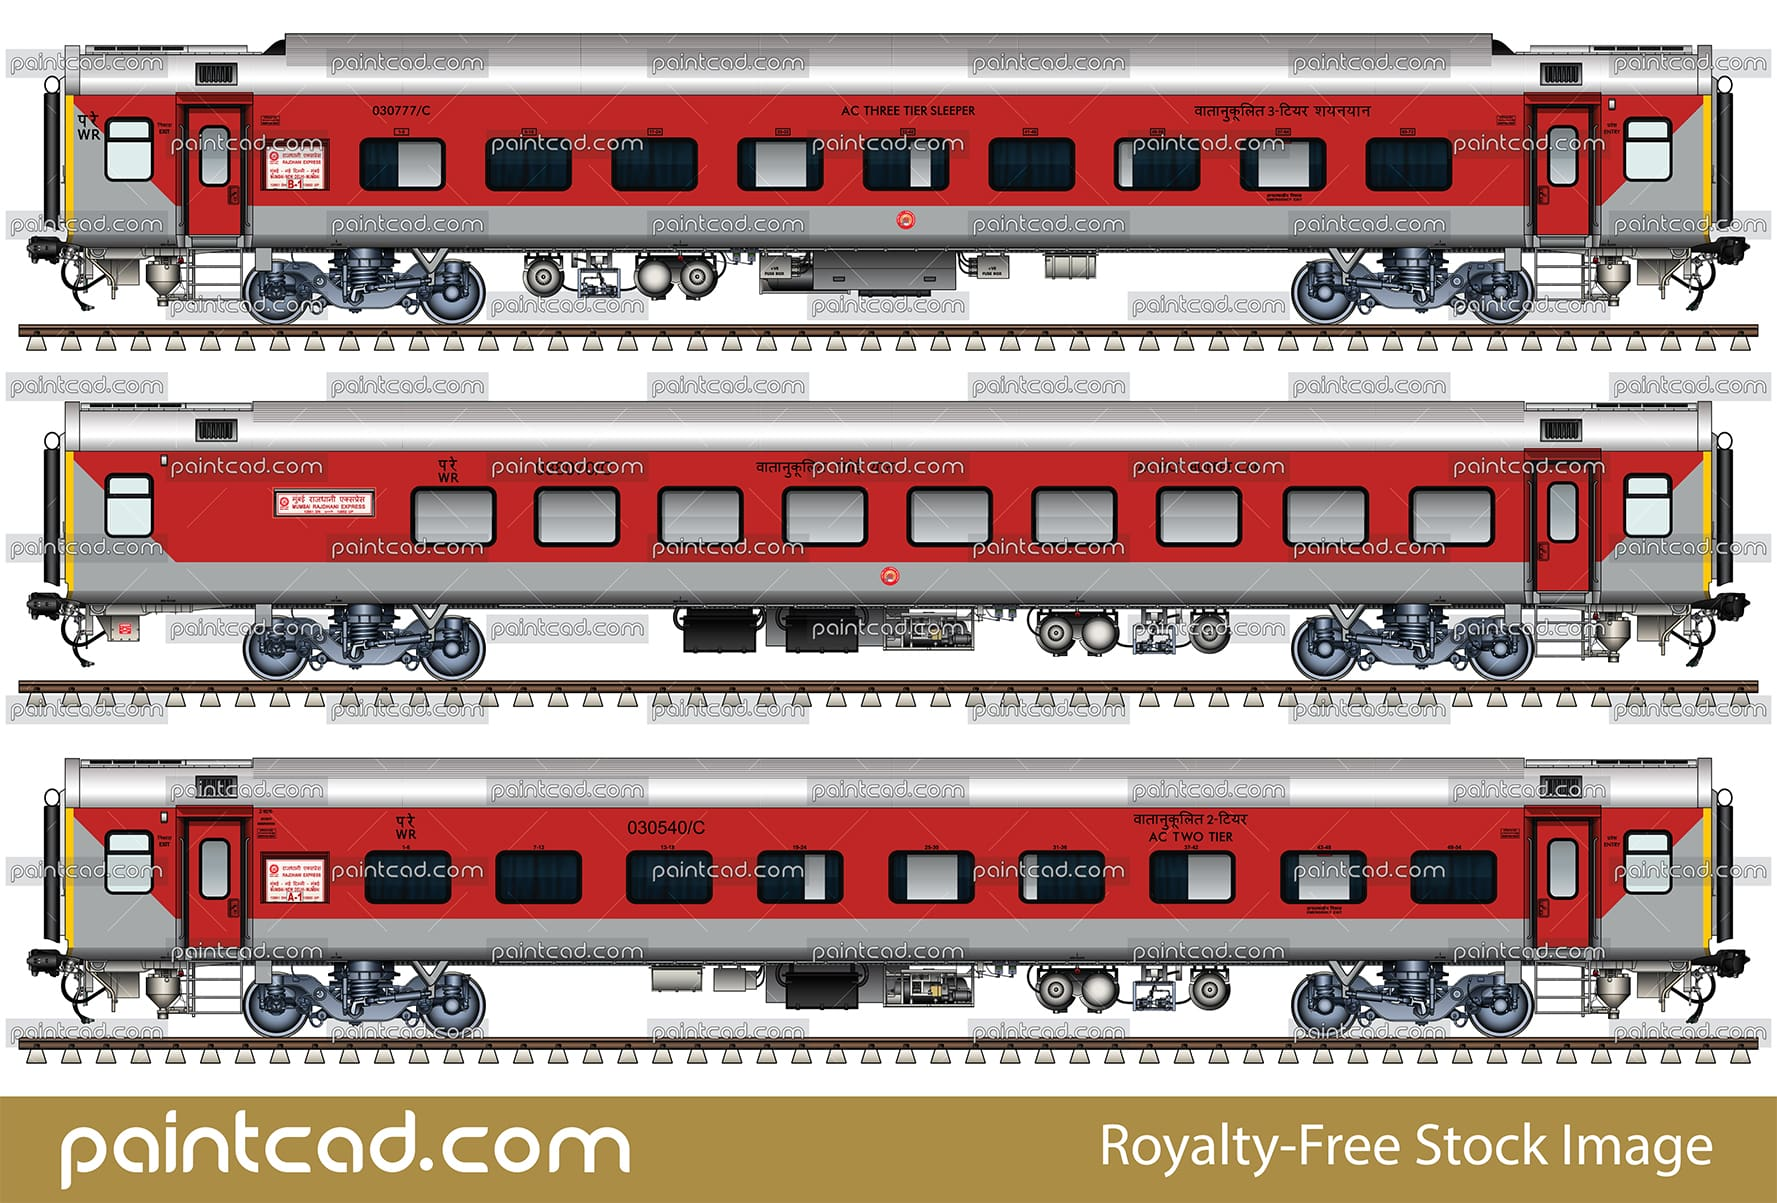 IMPORTANT: EDITORIAL USE ONLY!  Vector image in high-resolution 300 DPI with side view of Indian passenger cars Linke Hofmann Busch - AC (Air-Conditioned) 3-tier sleeper and general seat car second class. These cars are used in Western and Eastern Railway zone of Indian Railways. High-quality color CAD drawing. Isolated objects over white background.